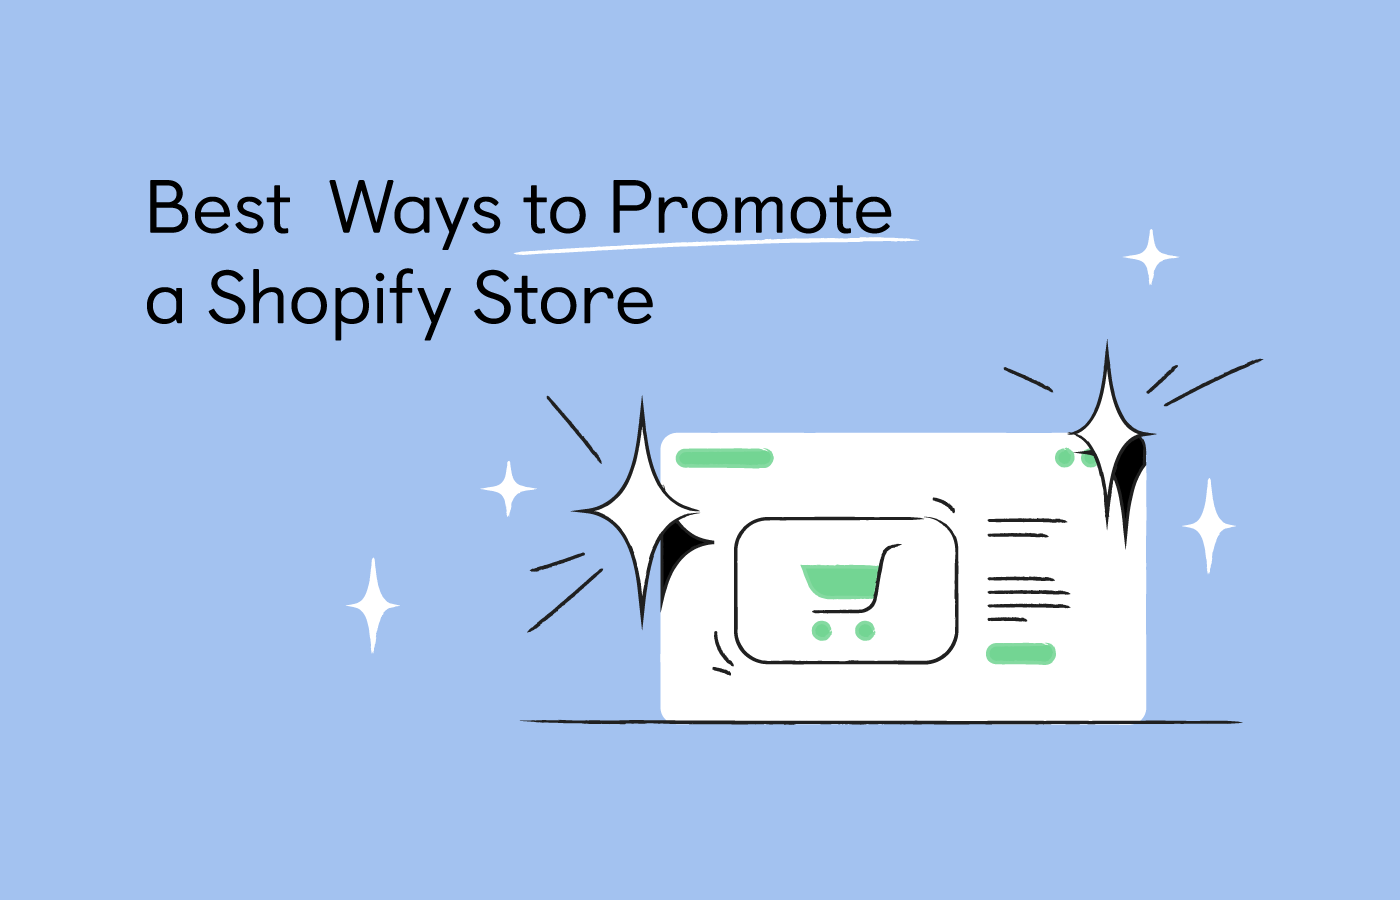 15 Tested Ways to Promote a Shopify Store [2021]